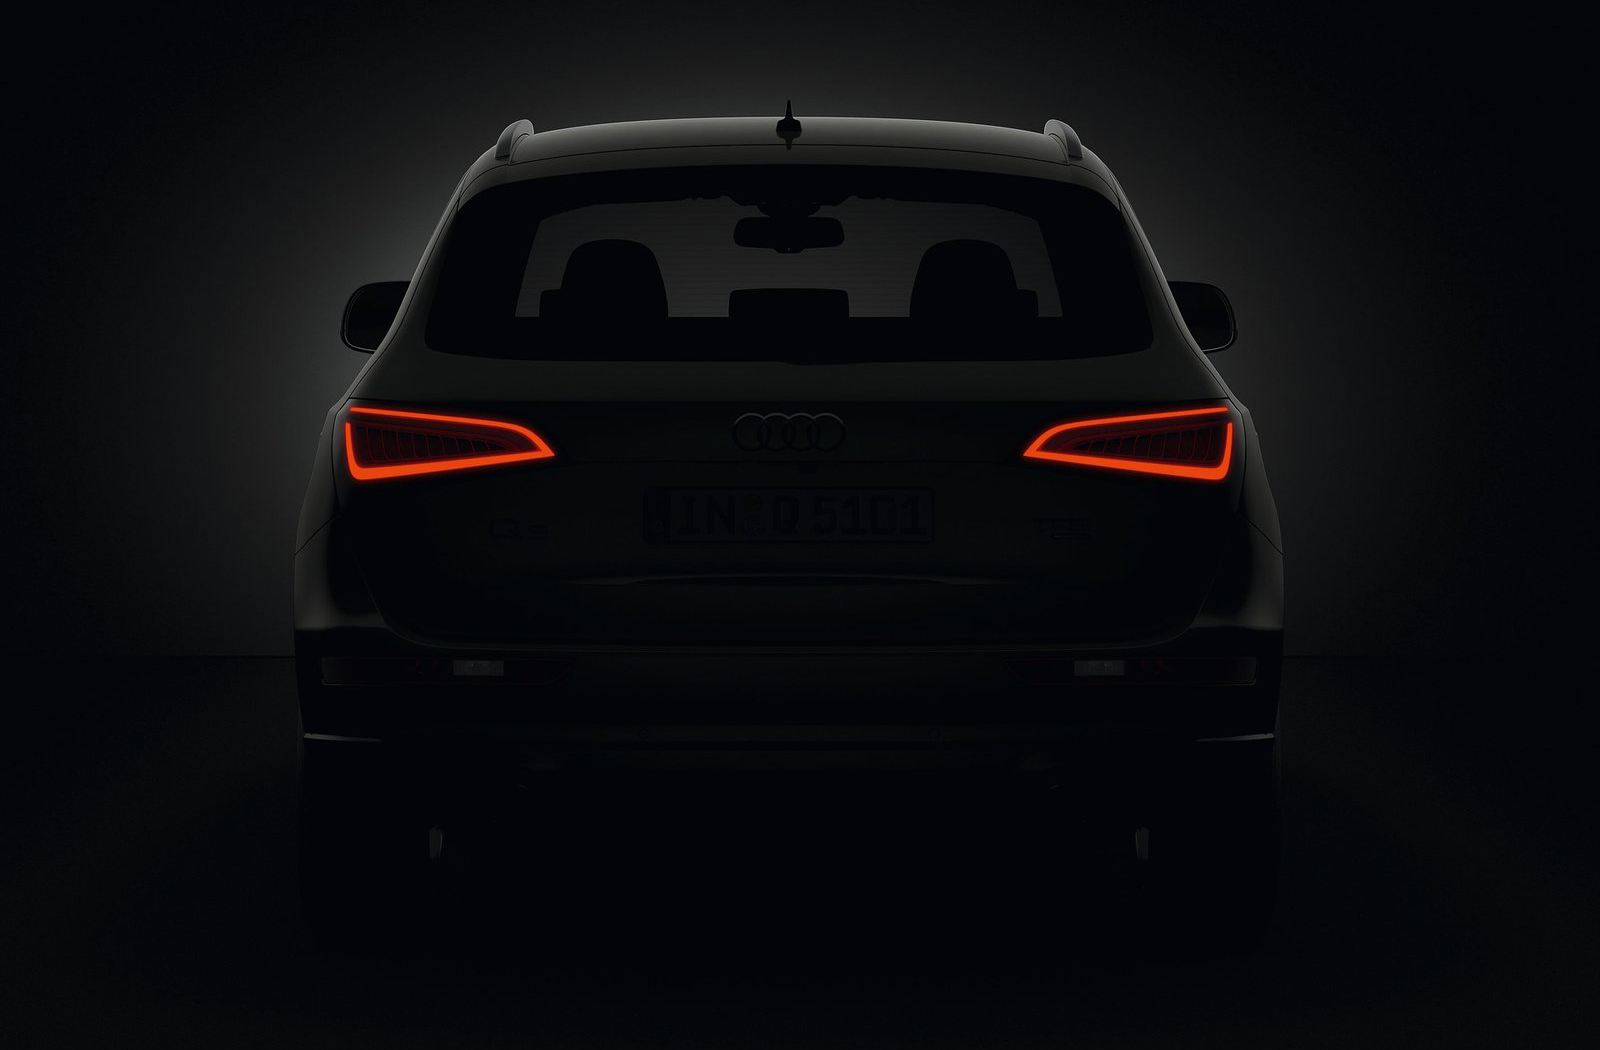 Audi Q5 HD Wallpapers The World of Audi